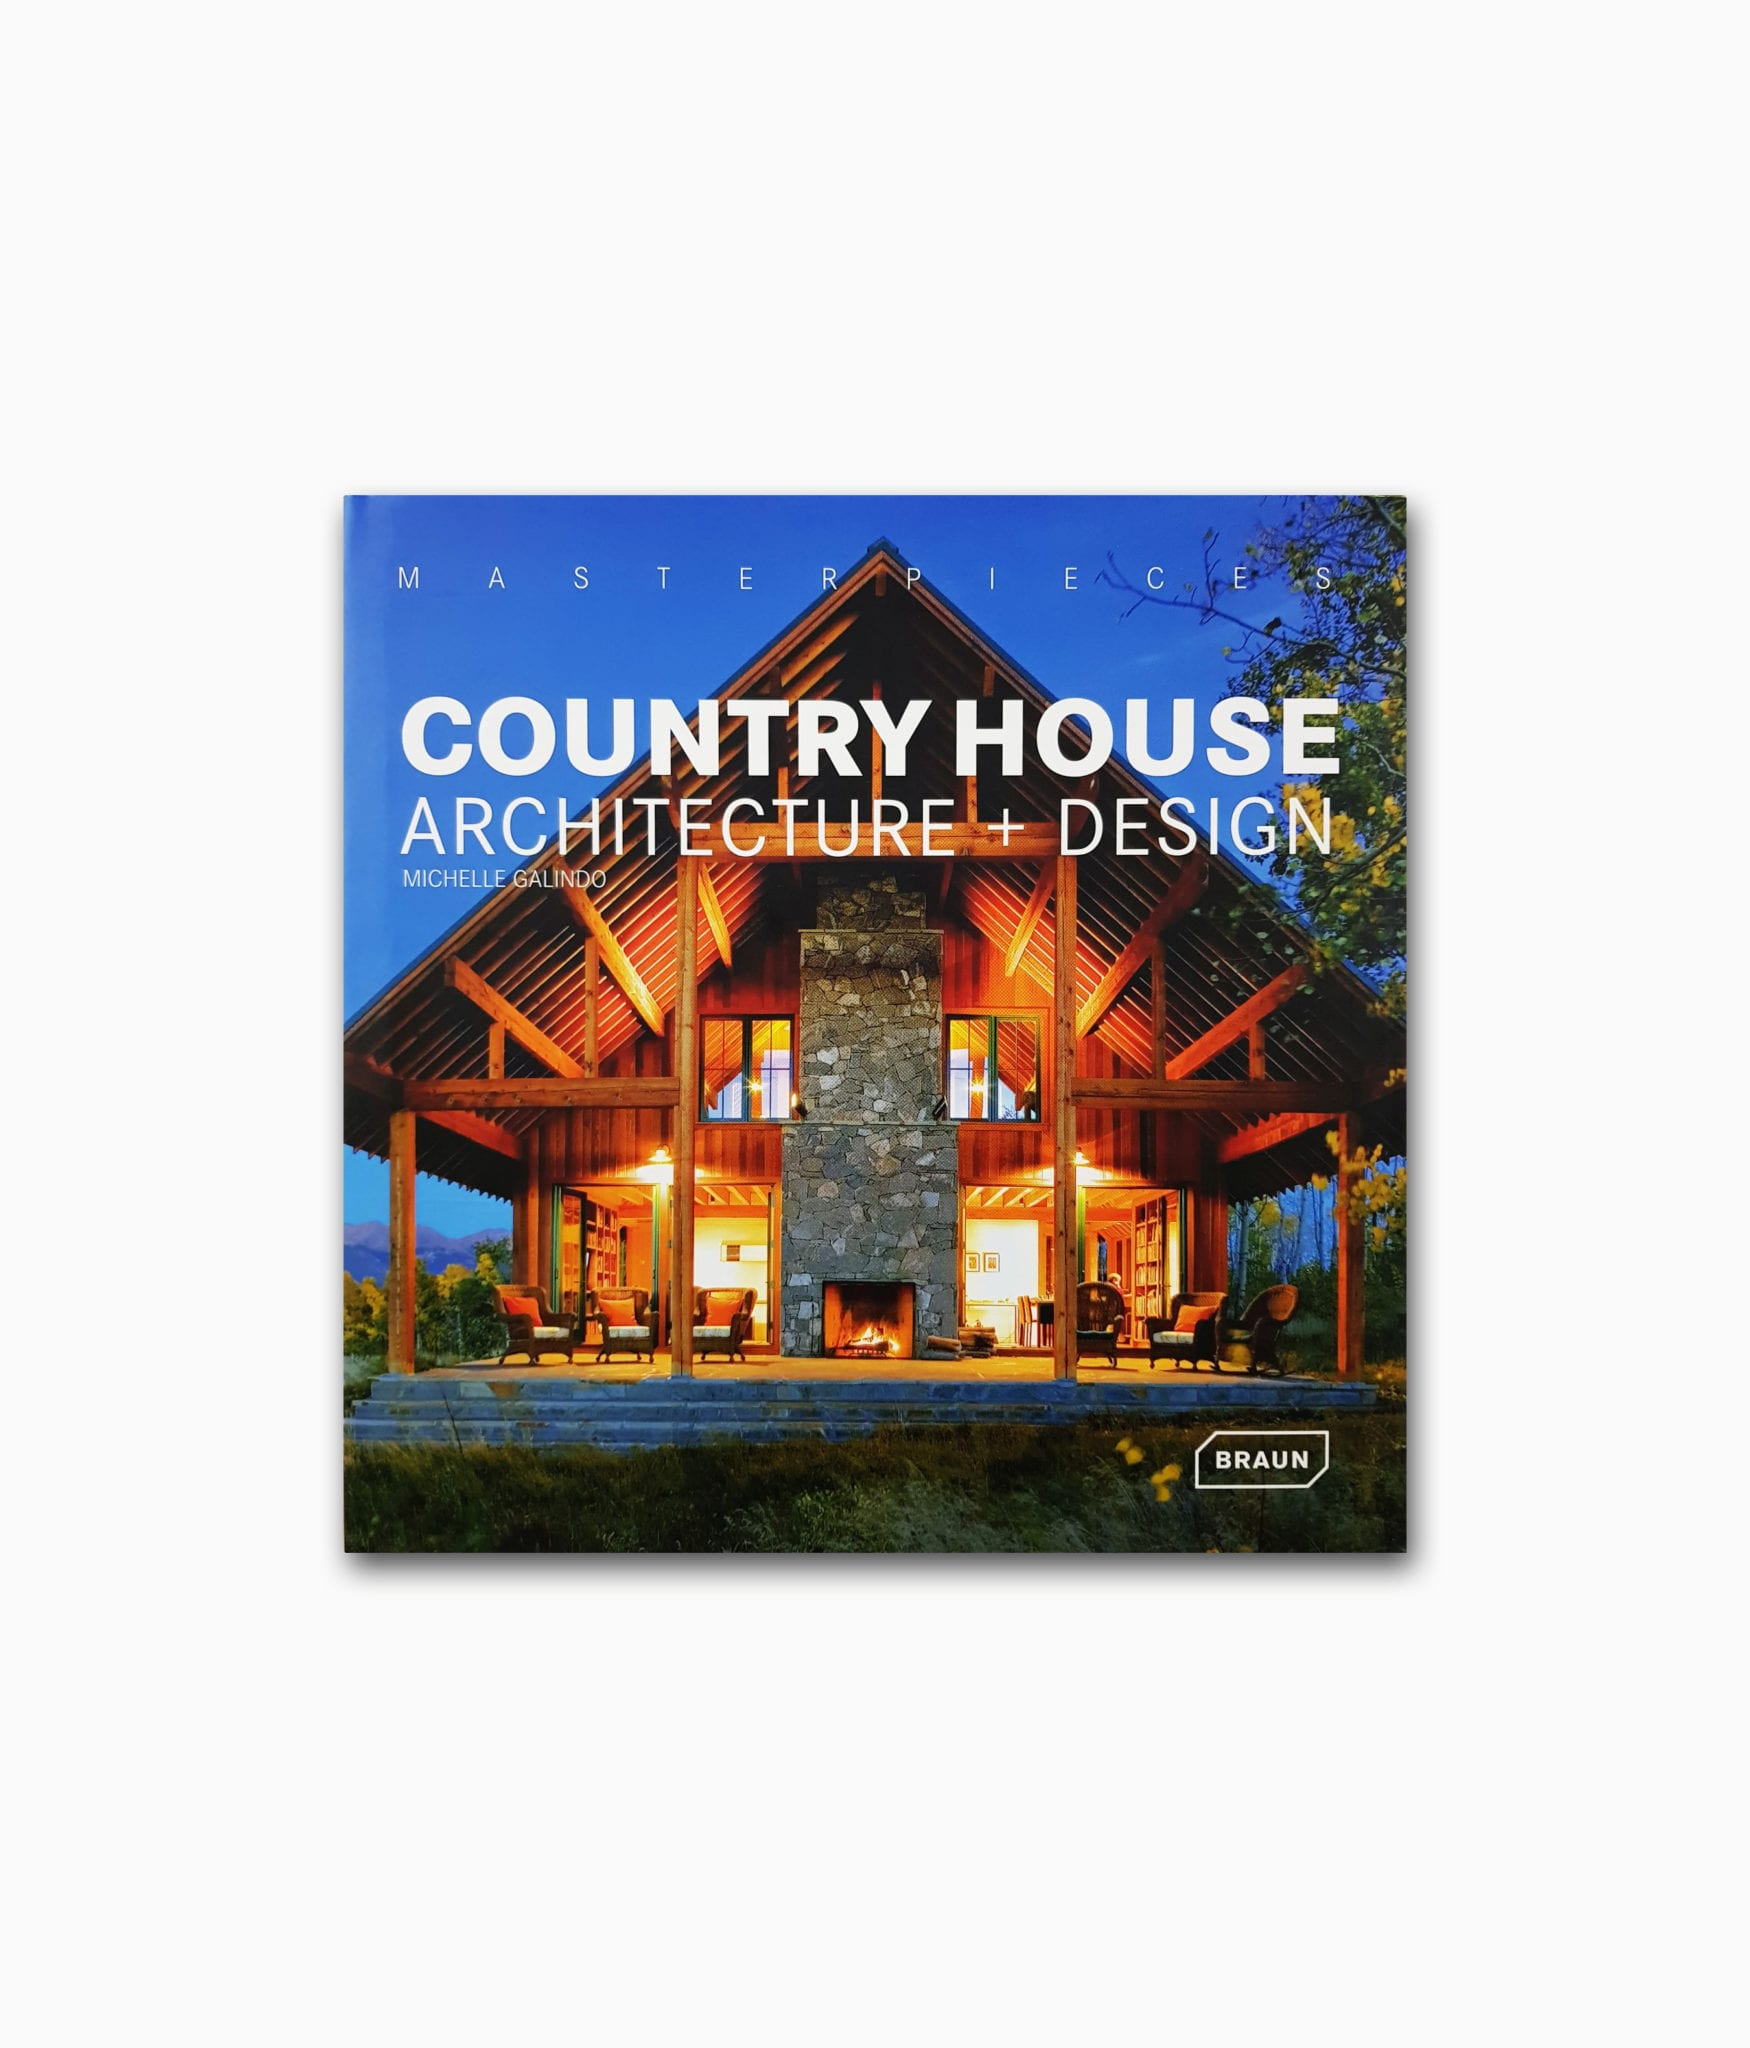 Country House Architecture Braun Publishing Buchcover